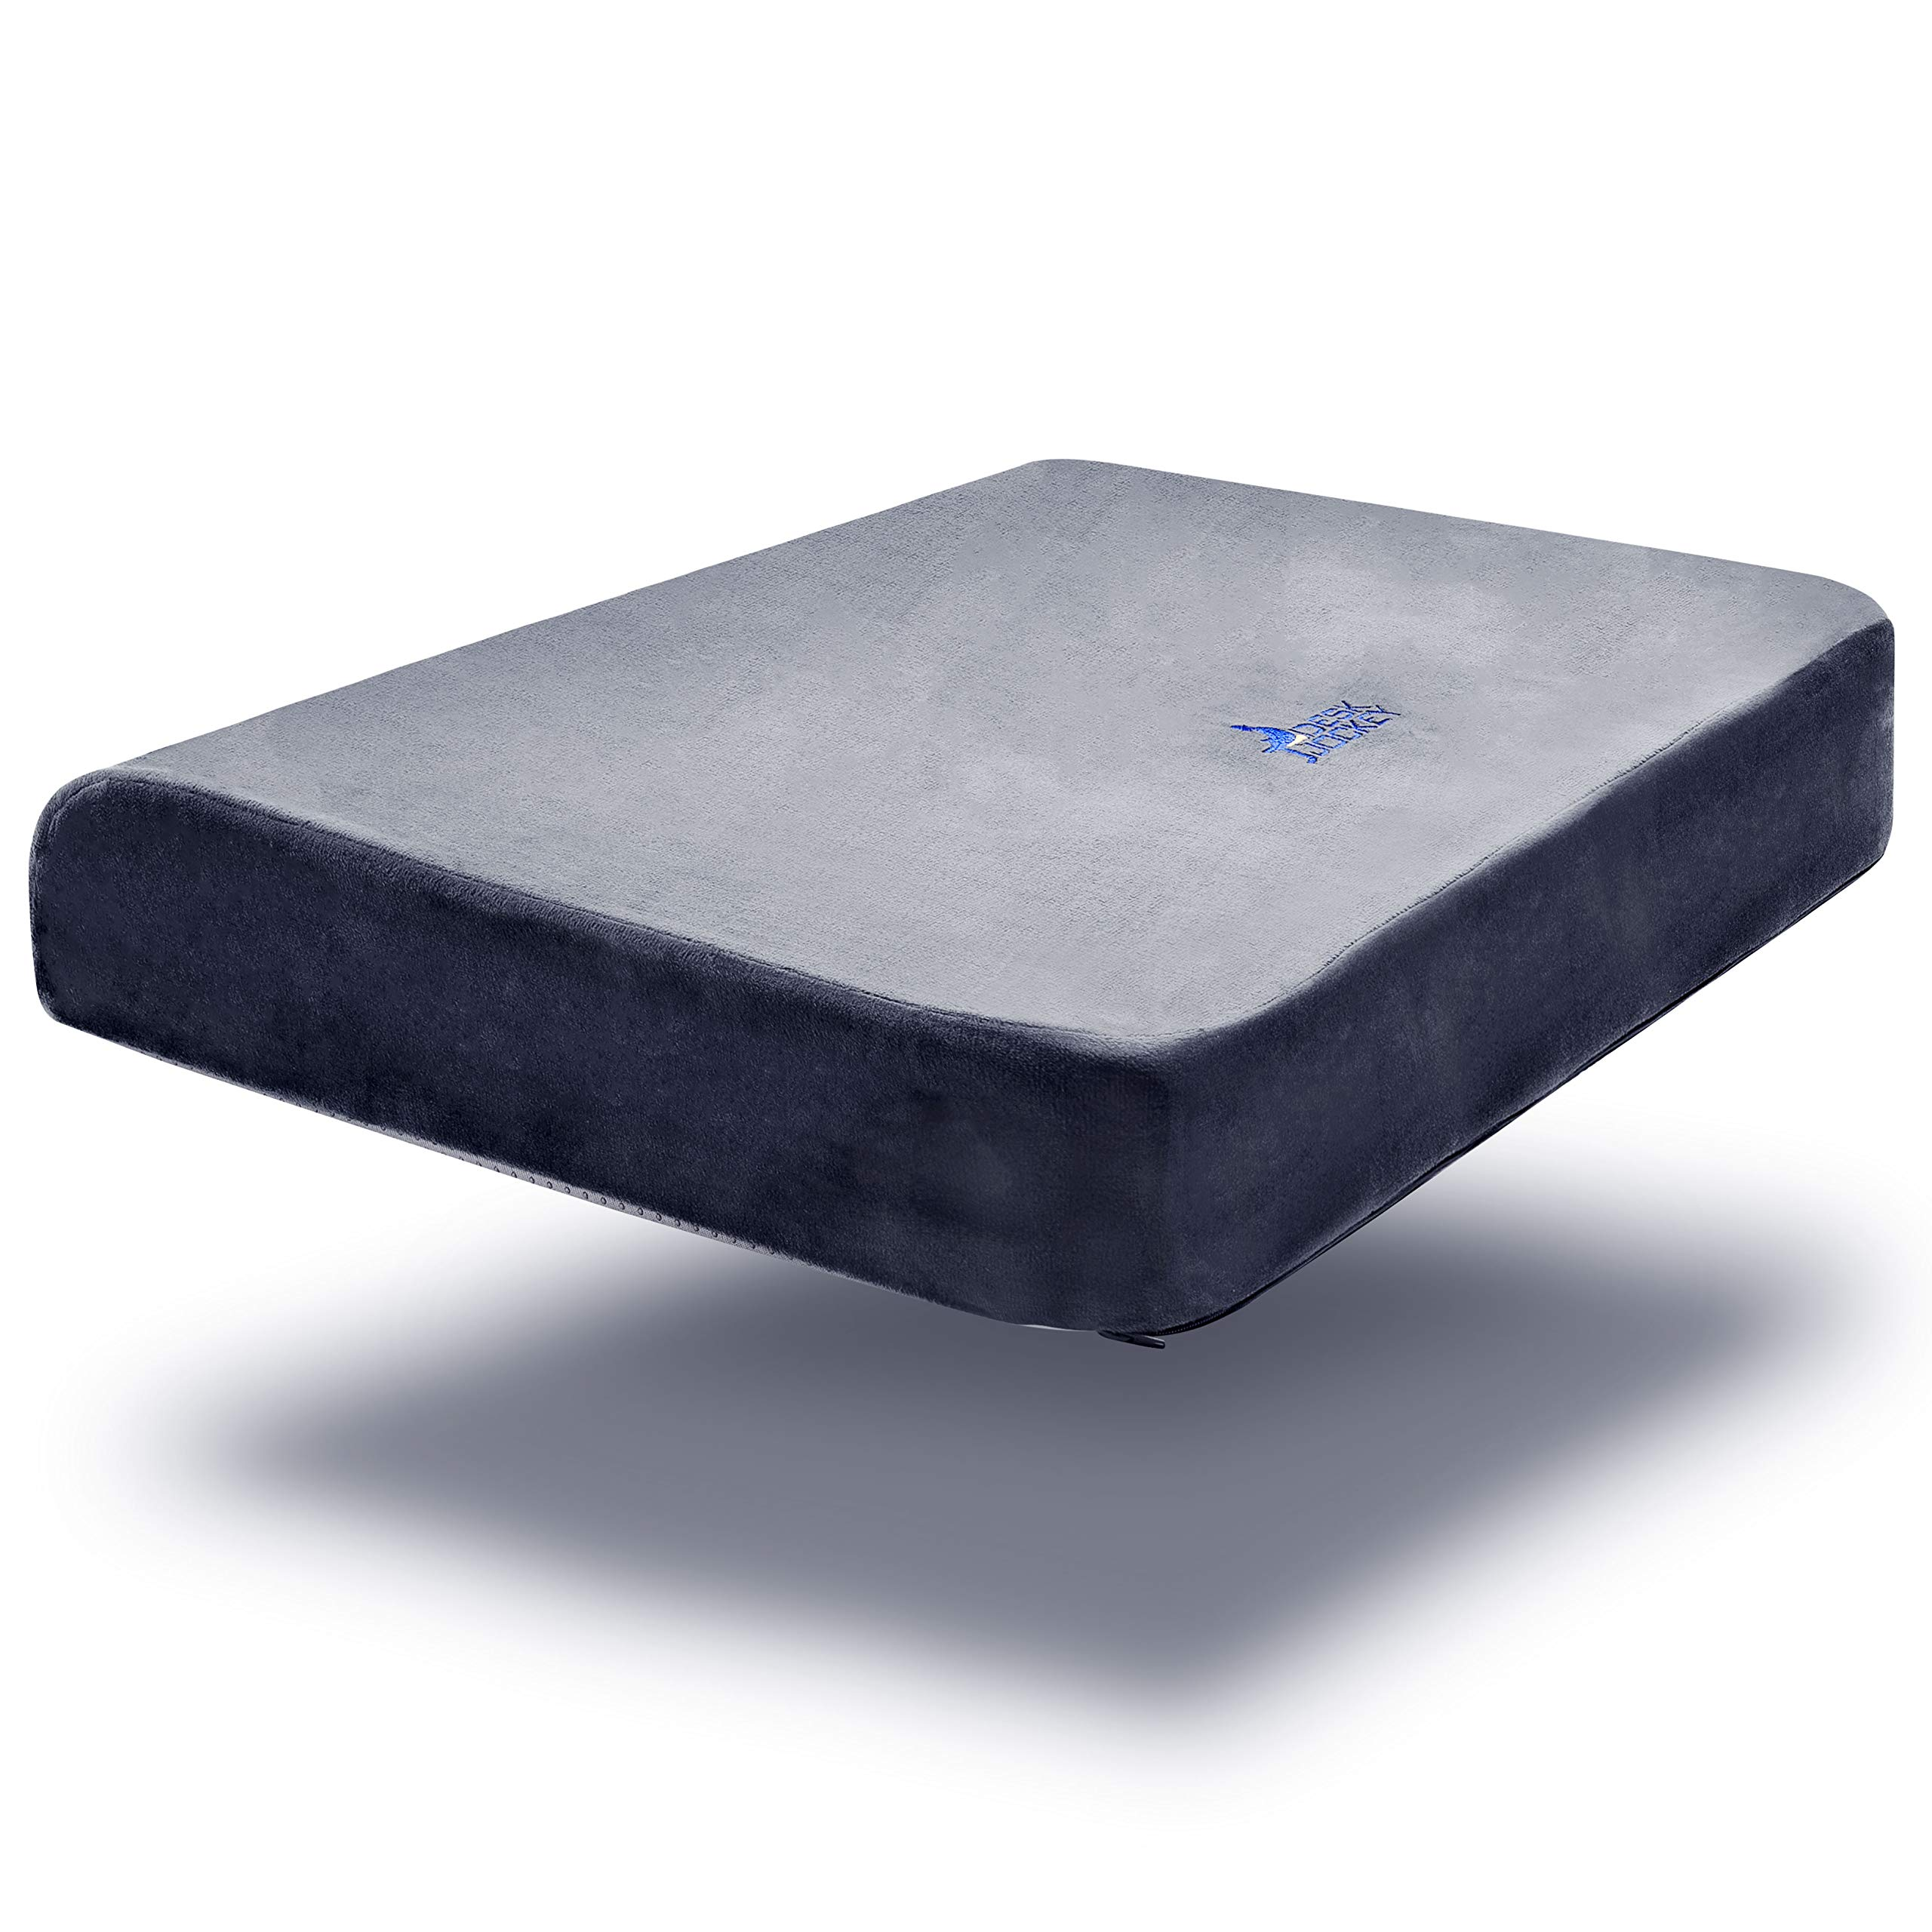 Desk Jockey Seat Cushion for Extra Wide Wheelchairs & Office Chairs - Full 25 Inches Wide - Clinical Therapeutic Grade Orthopedic Sitting Pad - Users 200 to 500lbs by Desk Jockey